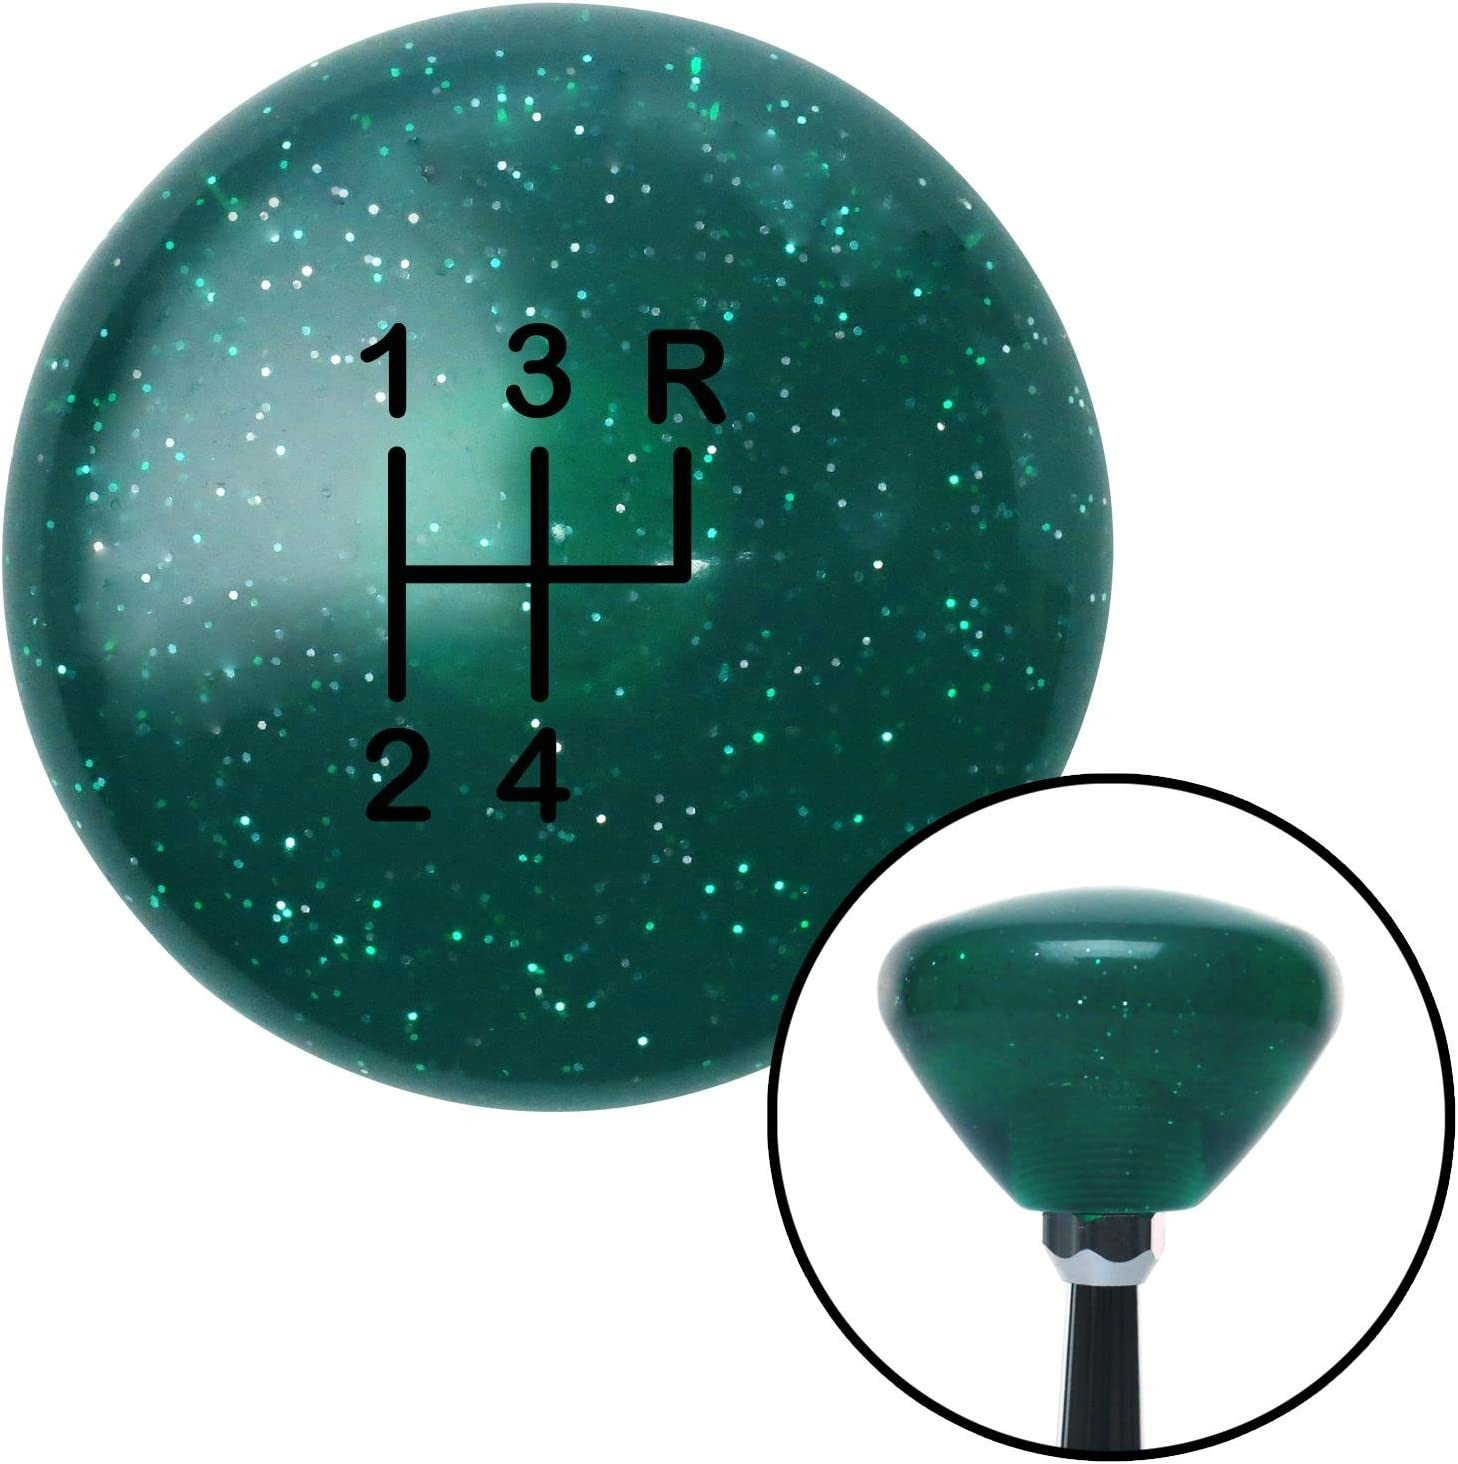 American Shifter 208891 Green Retro Metal Flake Shift Knob with M16 x 1.5 Insert Black Shift Pattern 7n